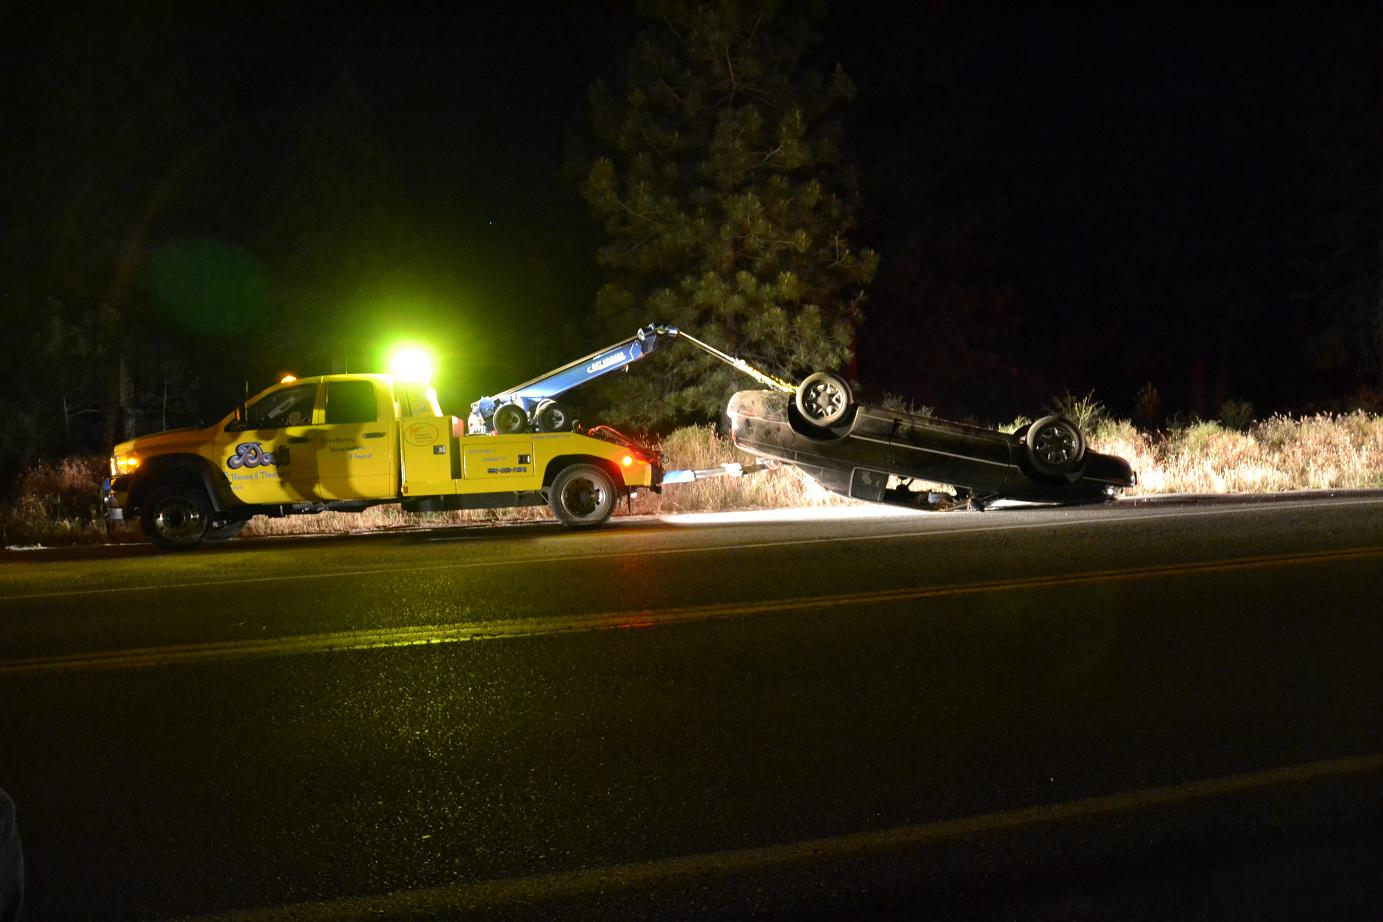 Cadillac upside down on the wrecker